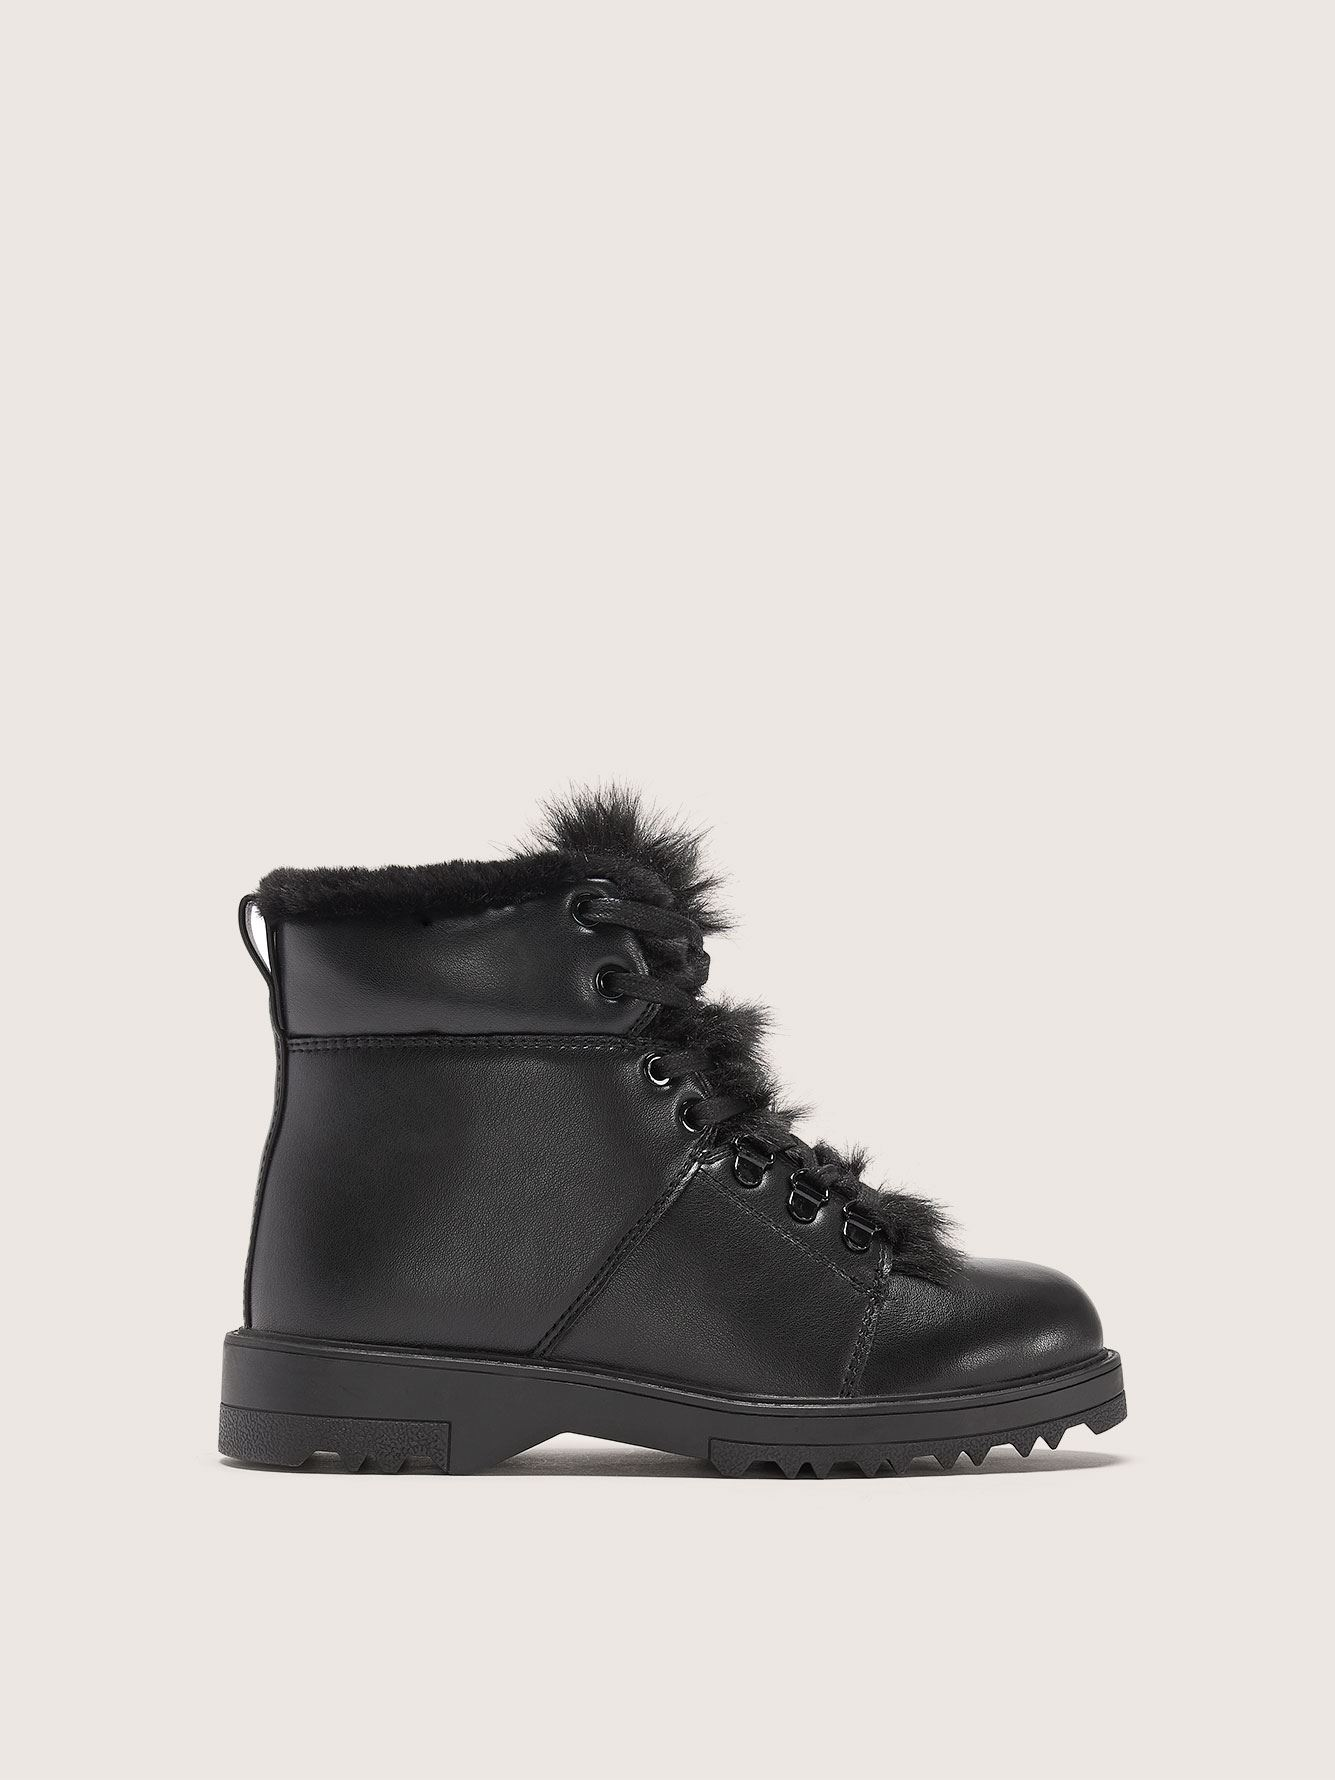 Wide Waterproof Winter Boot with Faux-Fur Trim - Addition Elle